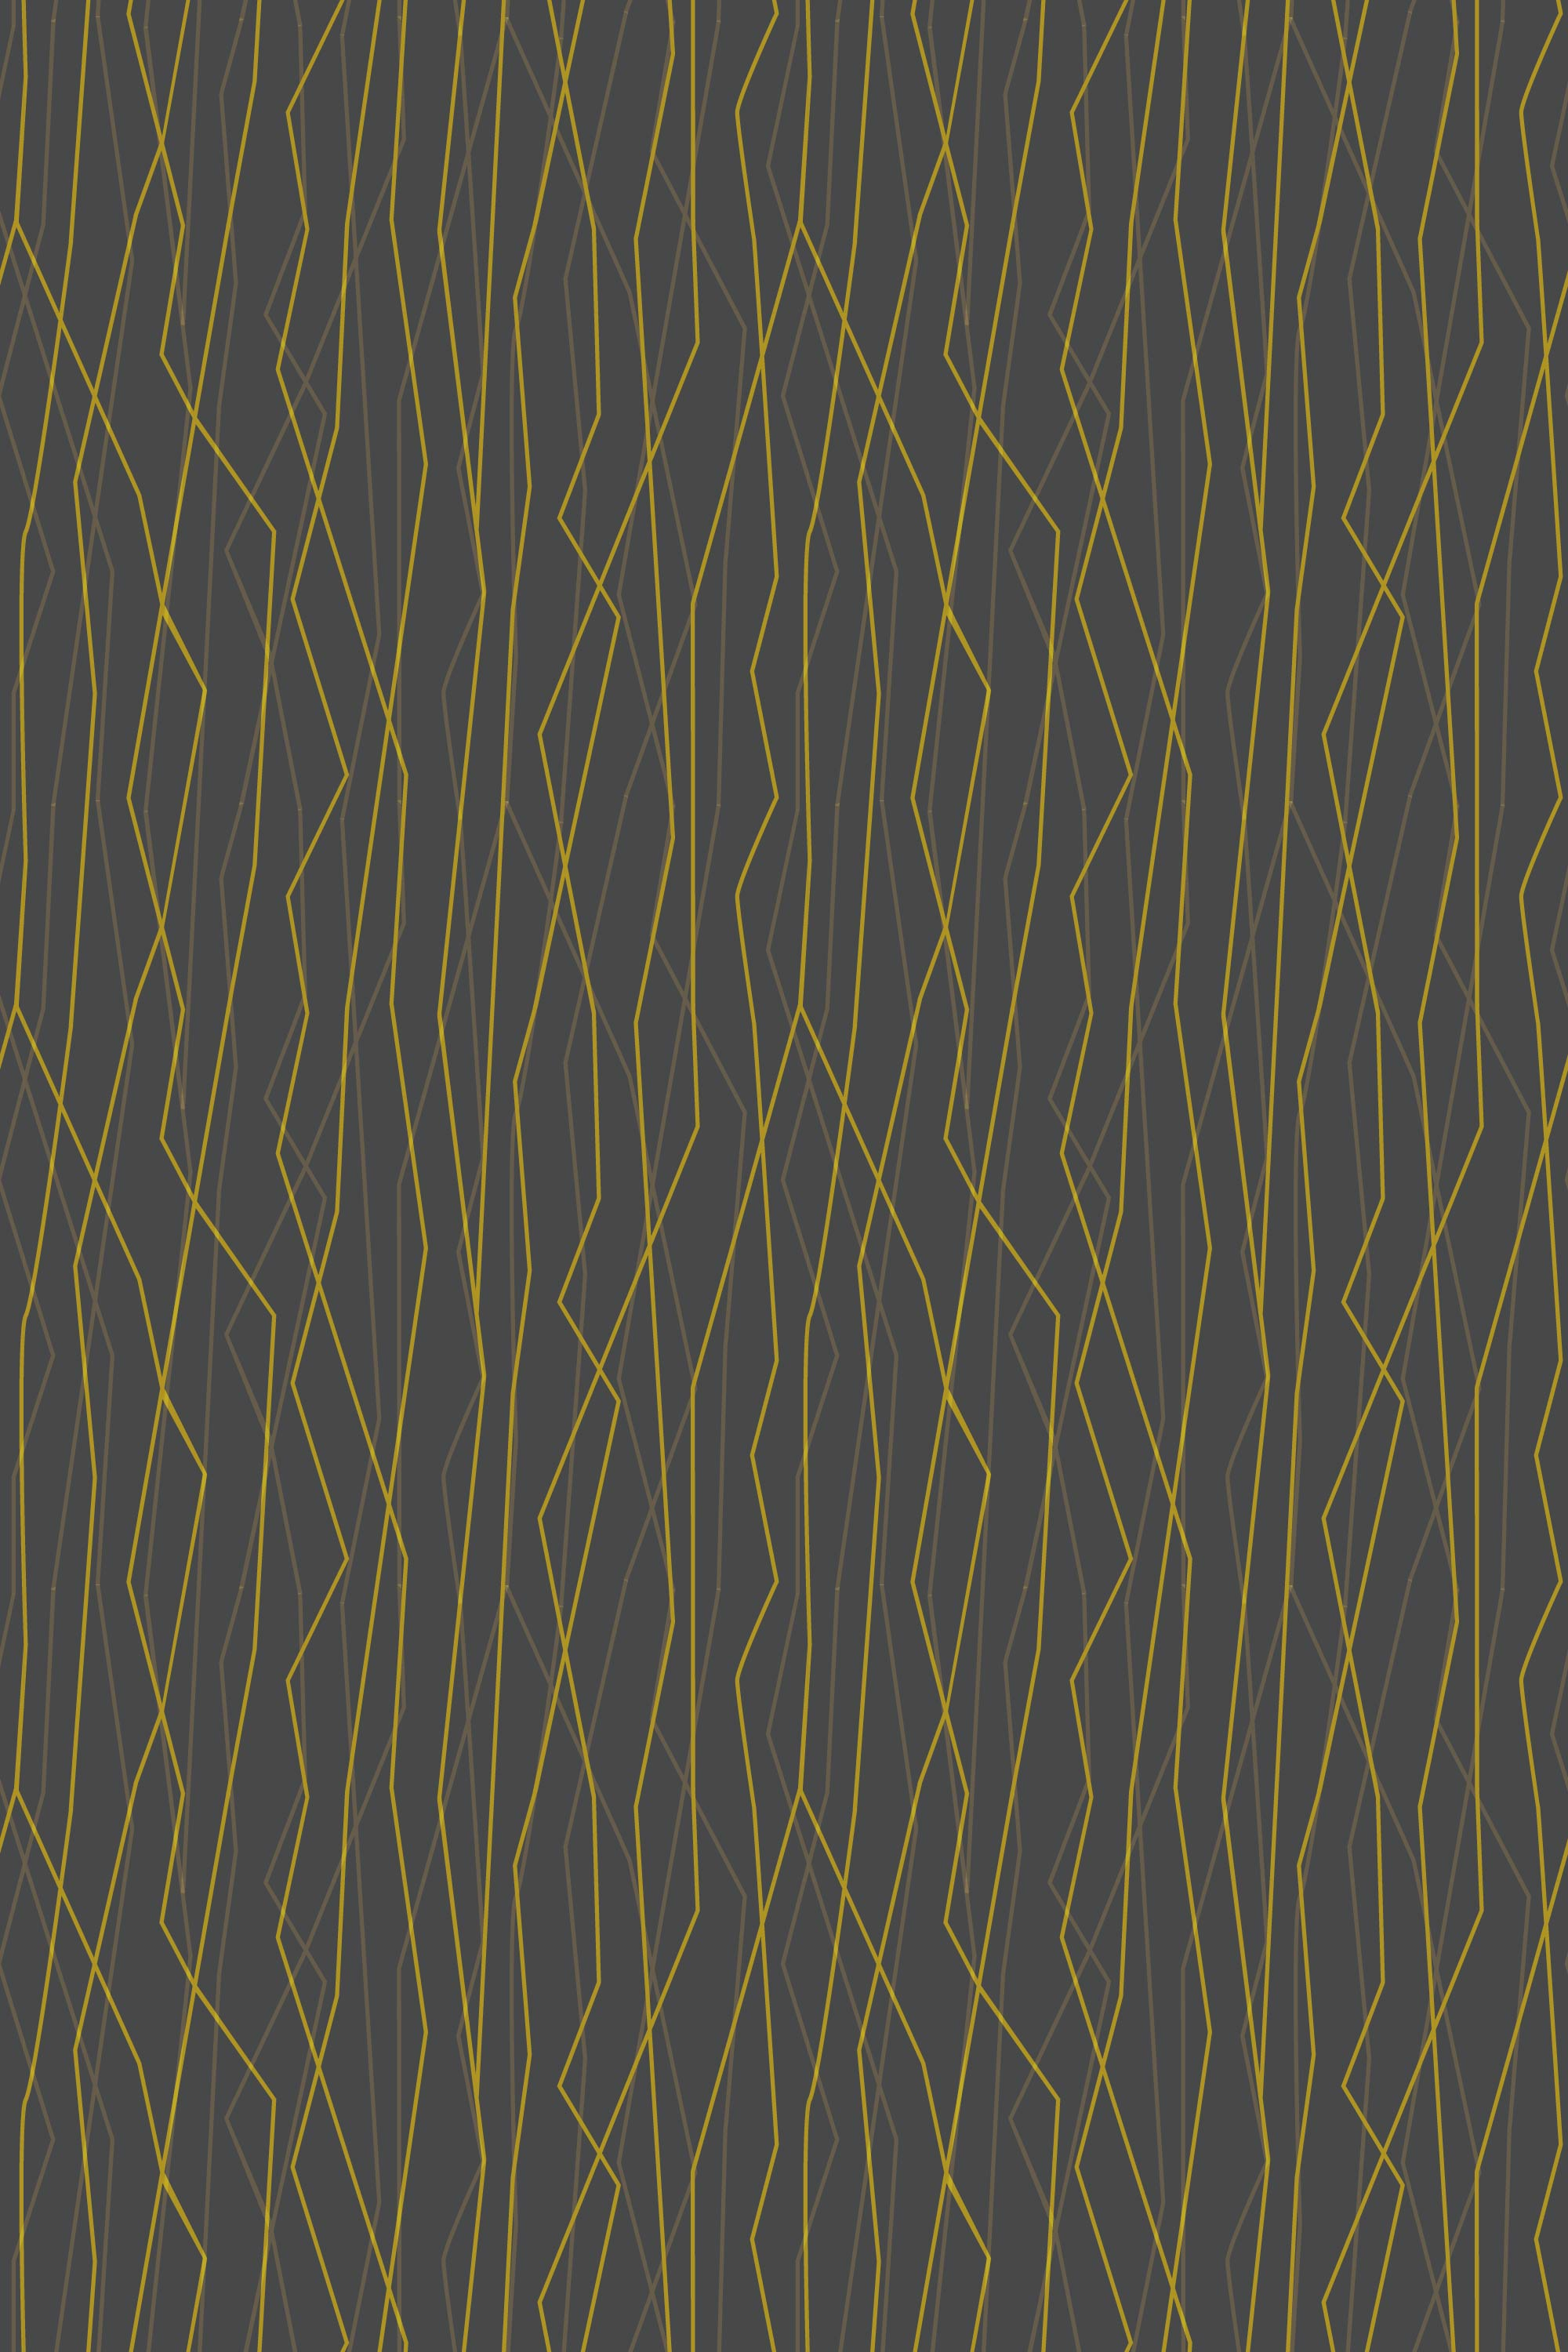 Black and gold wires organic background pattern